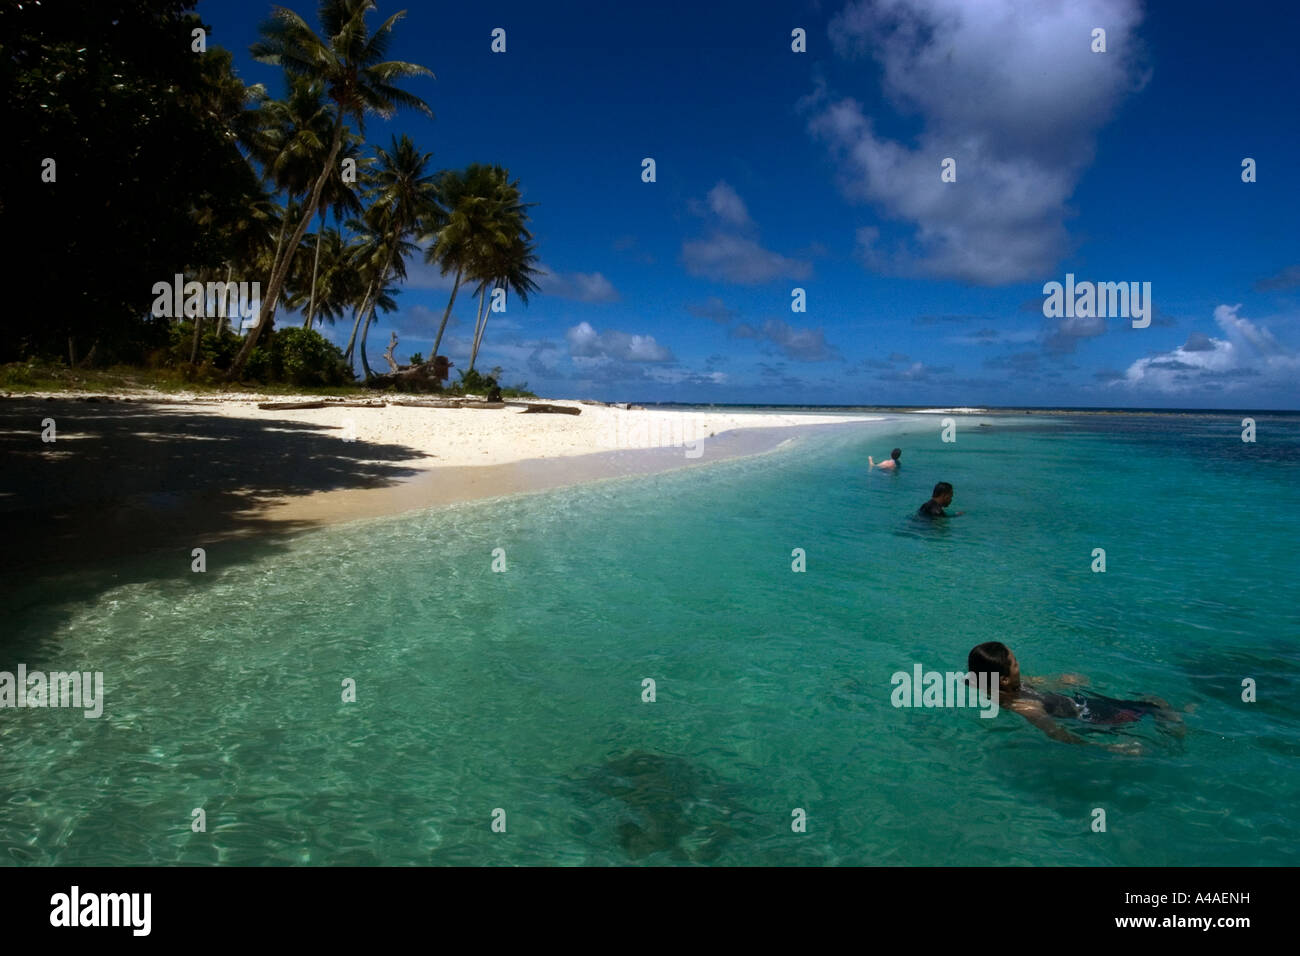 People enjoy the sheltered island beach in truk lagoon chuuk federated states of micronesia pacific